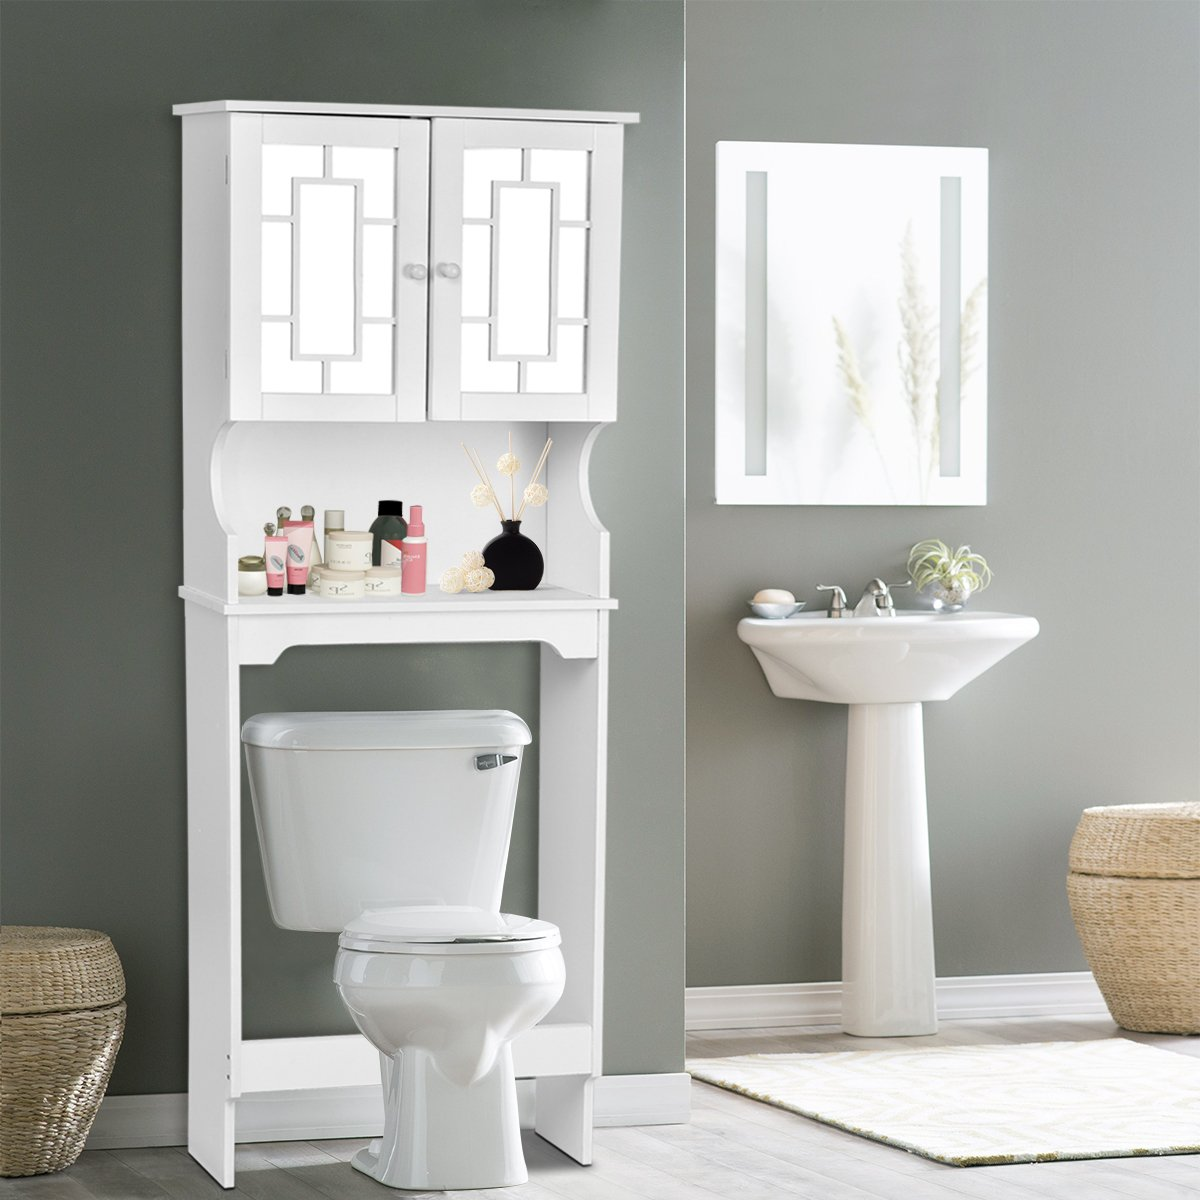 Giantex Bathroom Over-the-Toilet Space Saver with Shelf and 2-Door Mirrored Cabinet, White BA7243